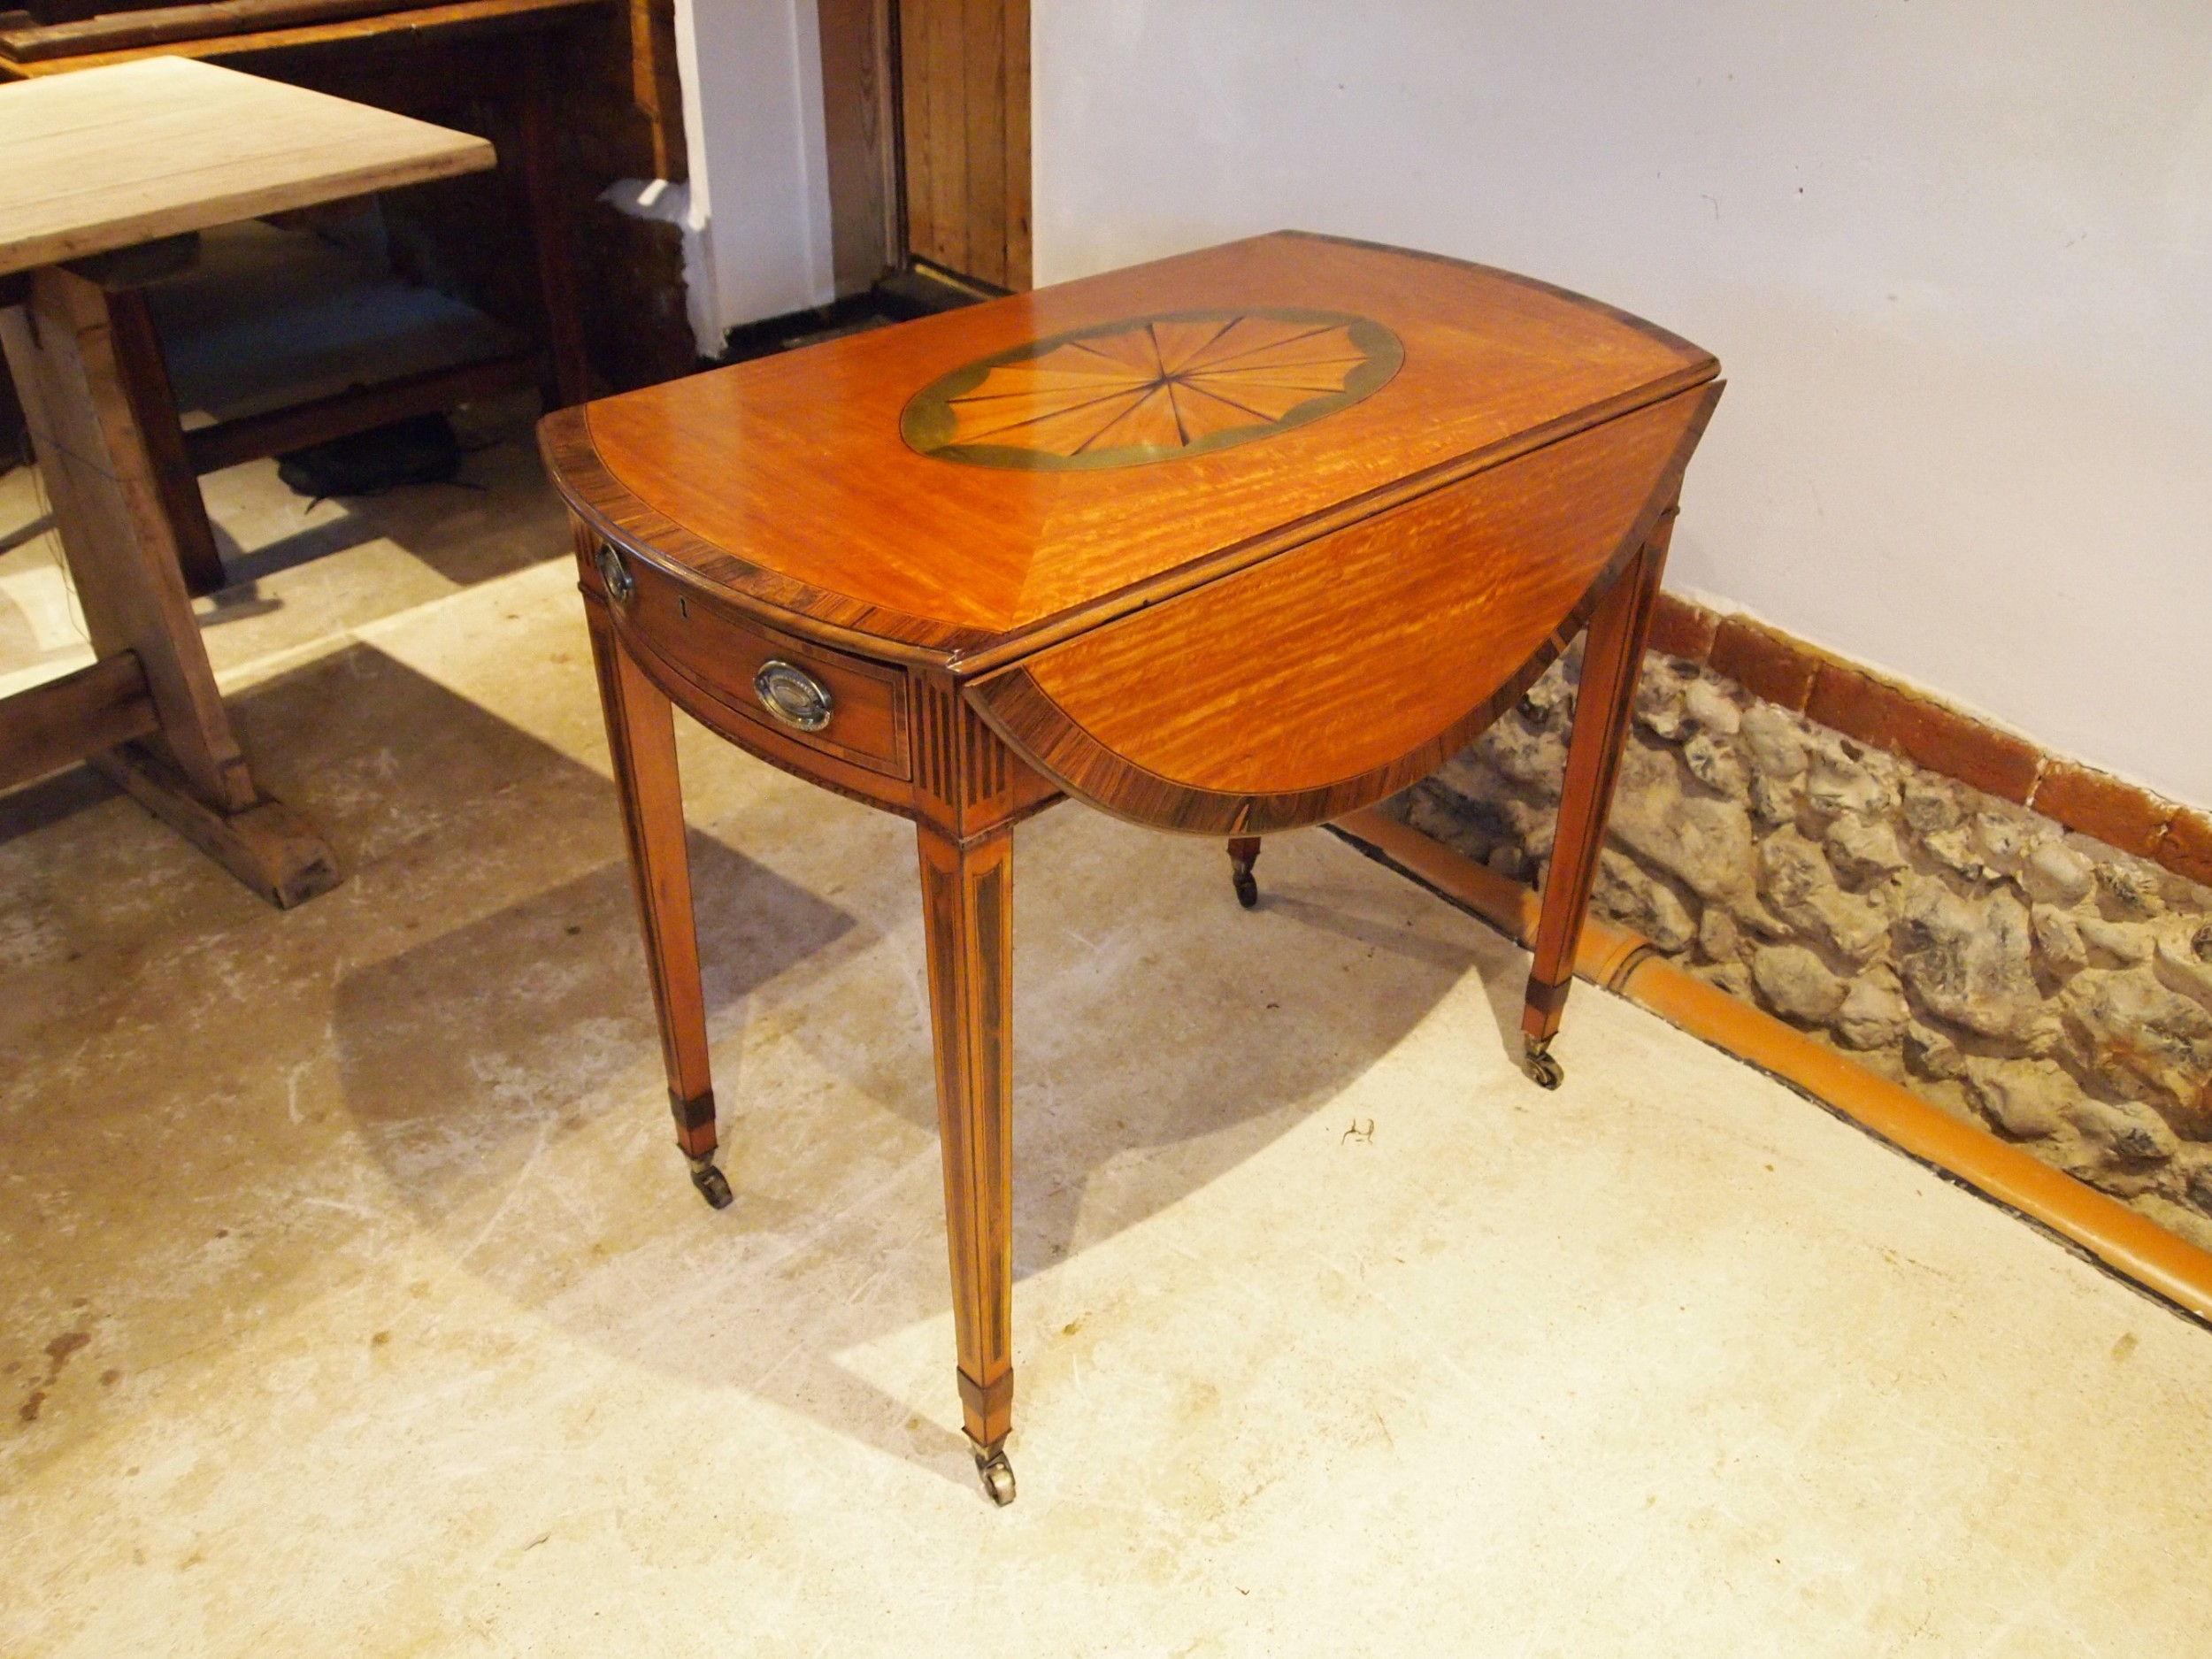 table outstanding fine quality edwardian satinwood pembroke table c1900